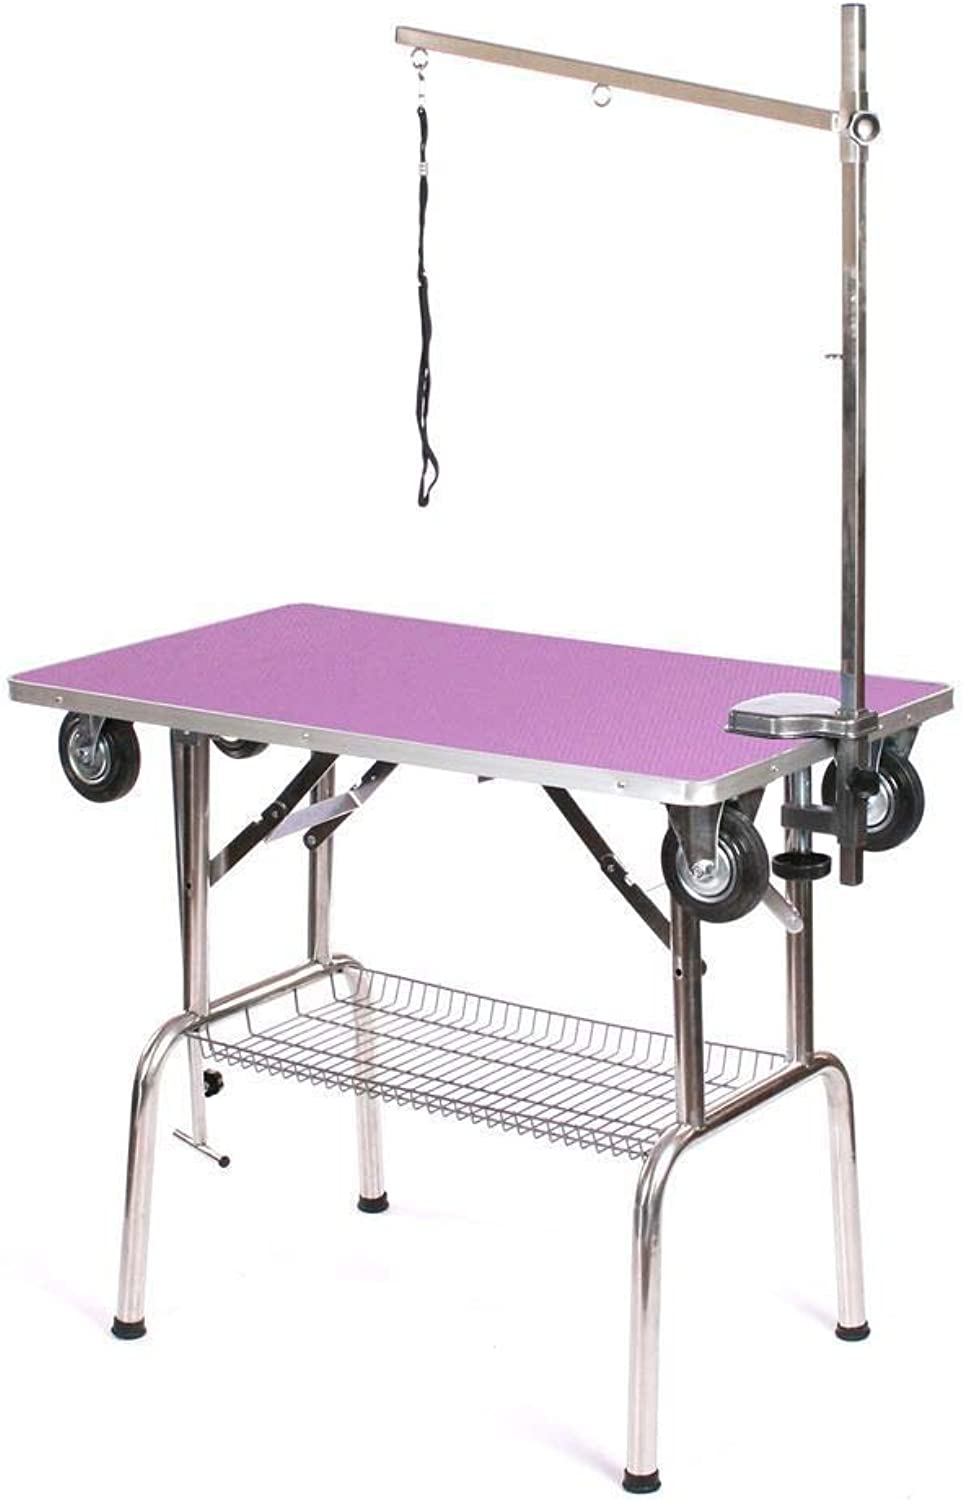 Generic arm noose show table eels arm noose dog pet grooming dog p with wheels portable mobile portable et groomin arm noose